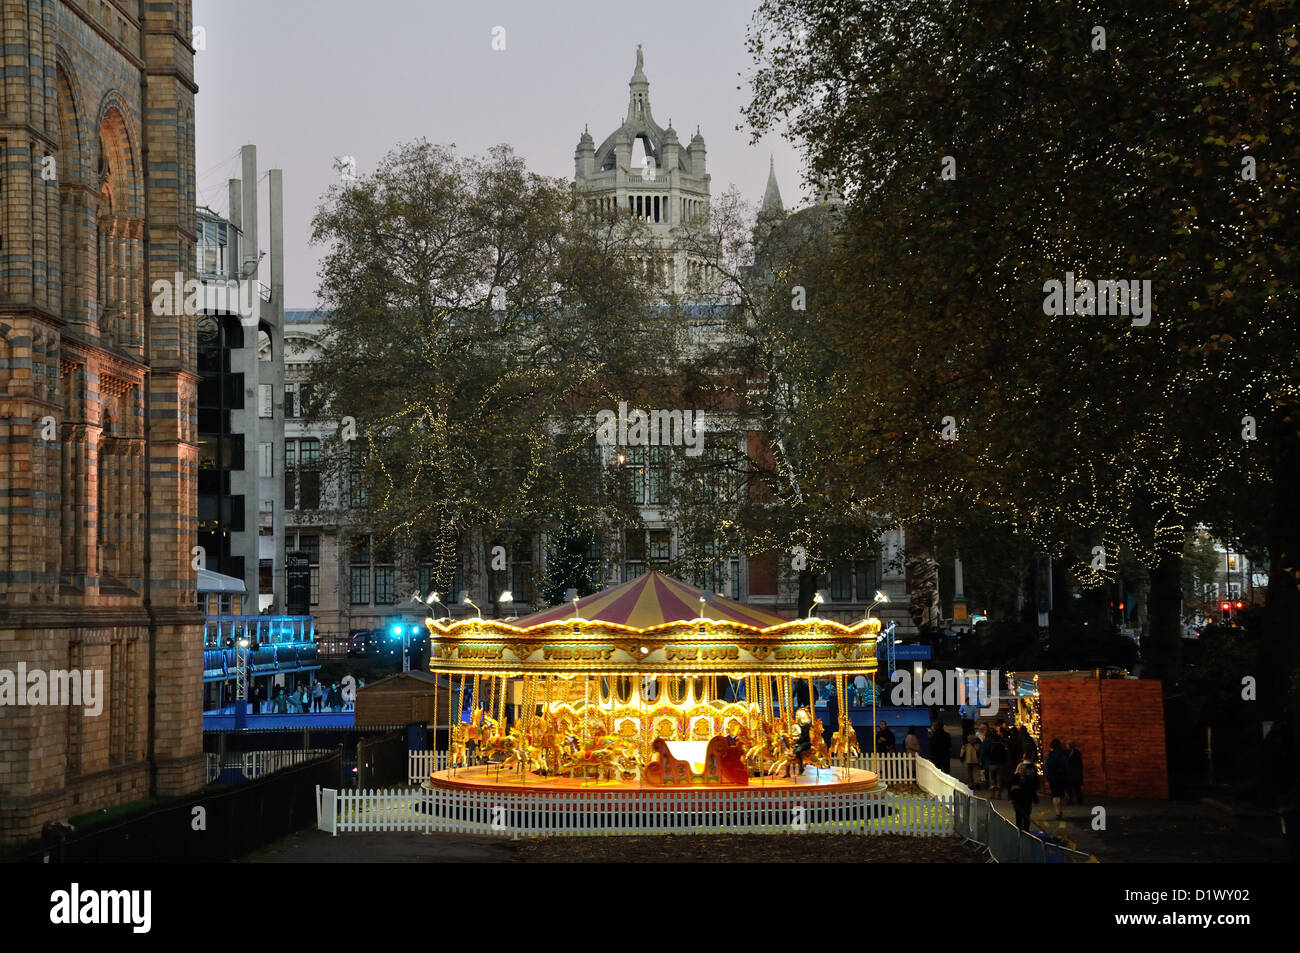 Carousel outside Natural History Museum, London with V & A Museum in background - Stock Image